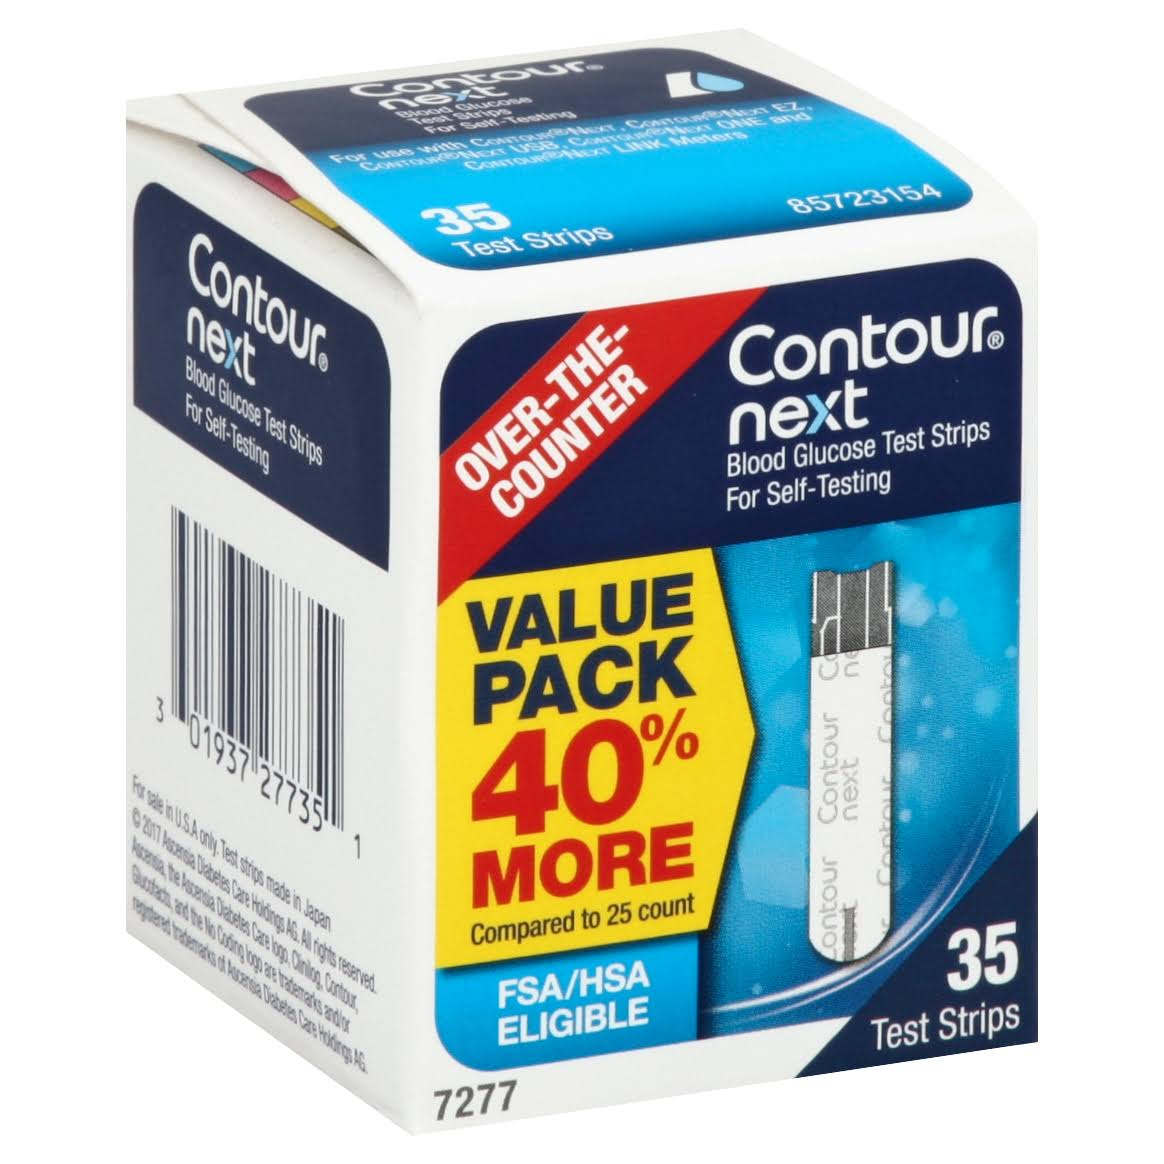 Contour Next Blood Glucose Test Strips - 35 Strips